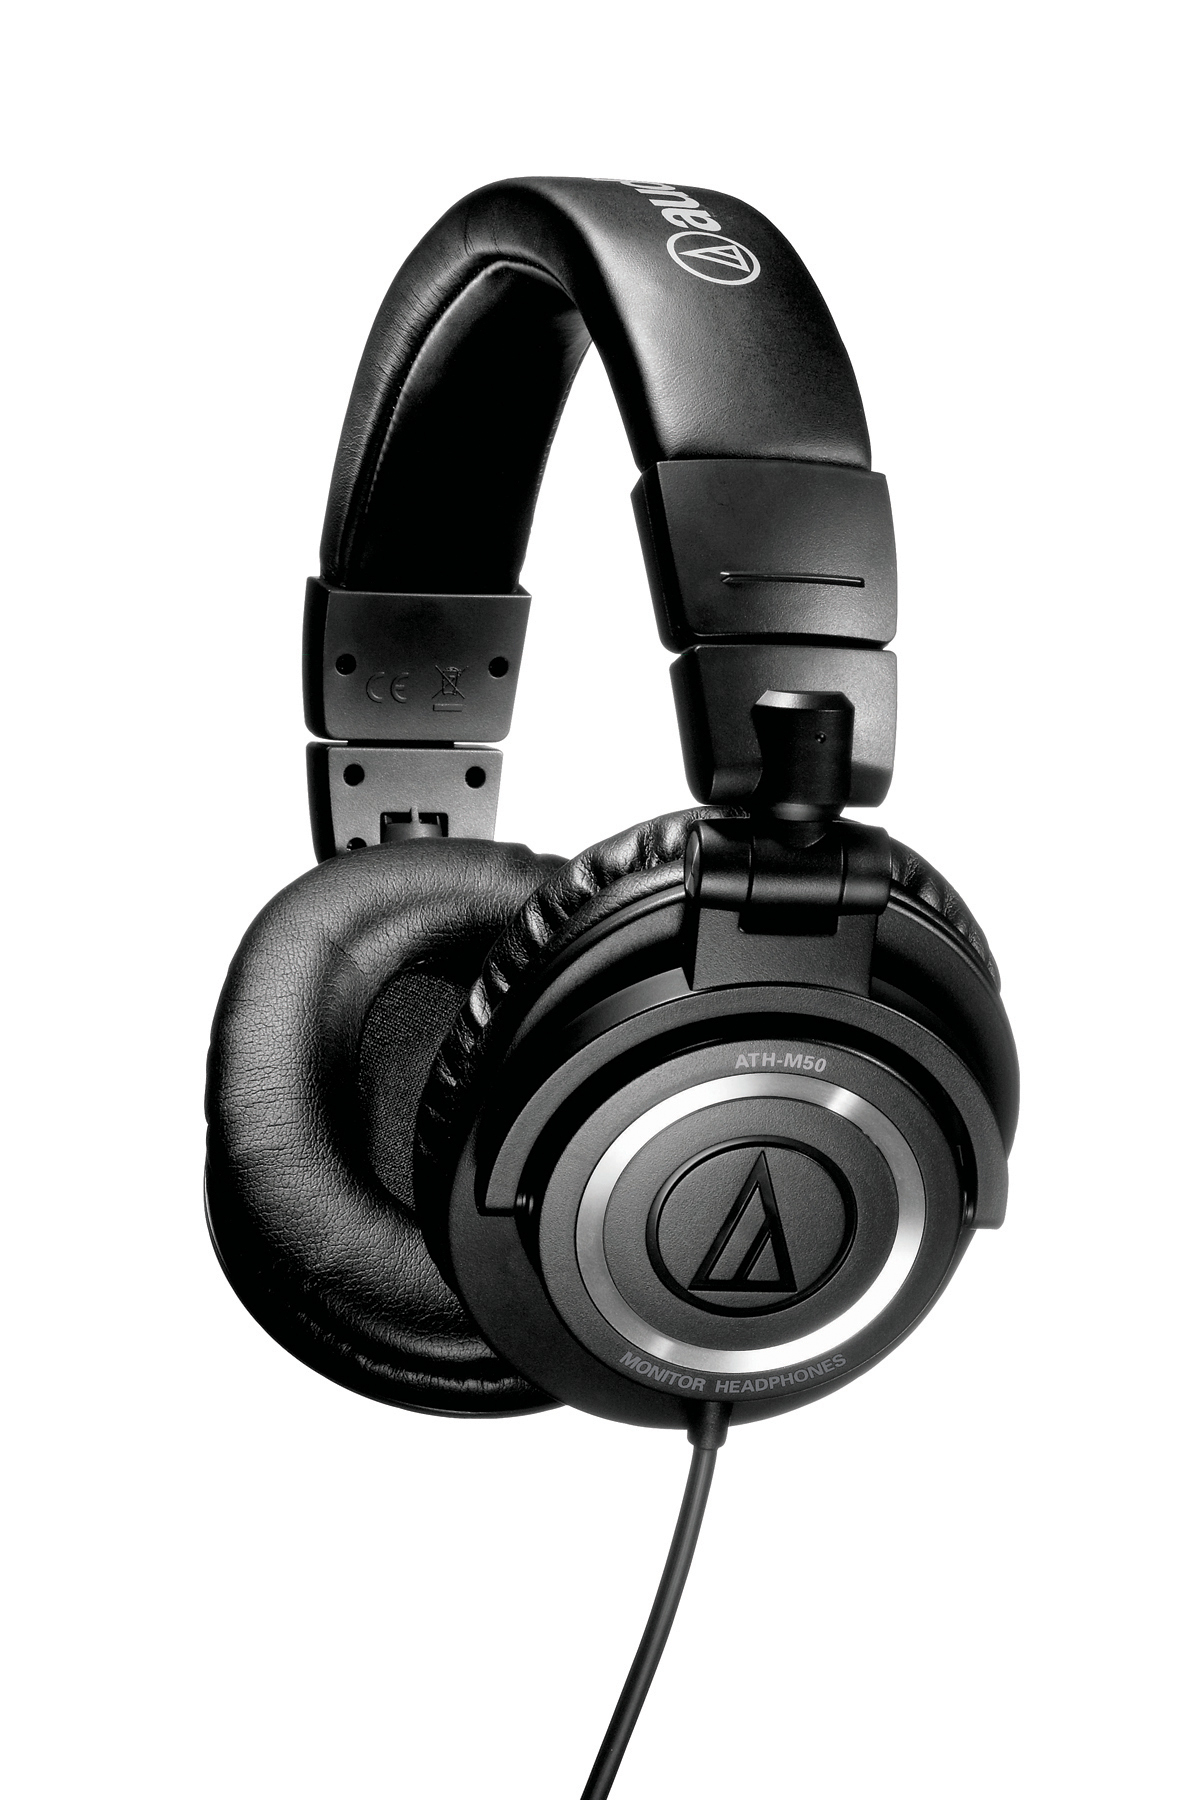 Audio Technica ATH-M50S Professional Studio Monitor Headphones with Straight Cable